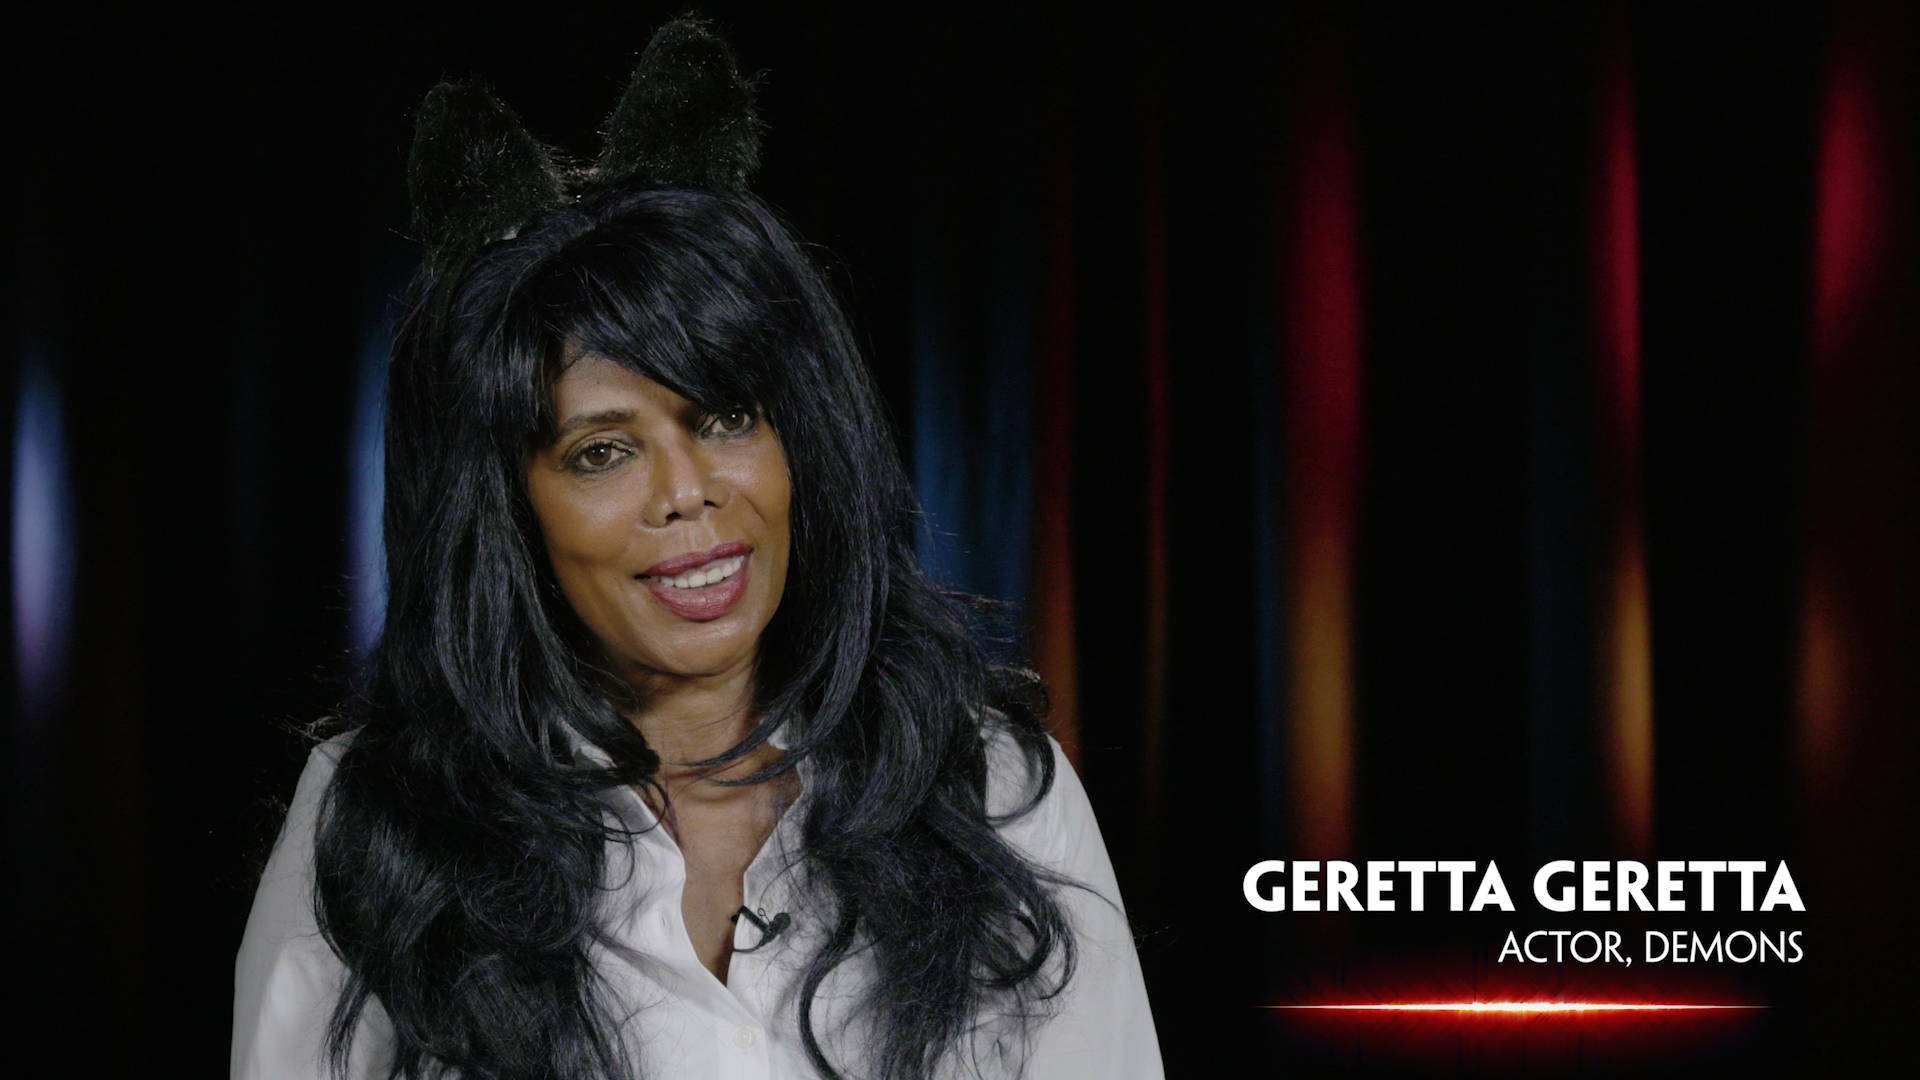 In Search of Darkness Part II: Geretta Geretta